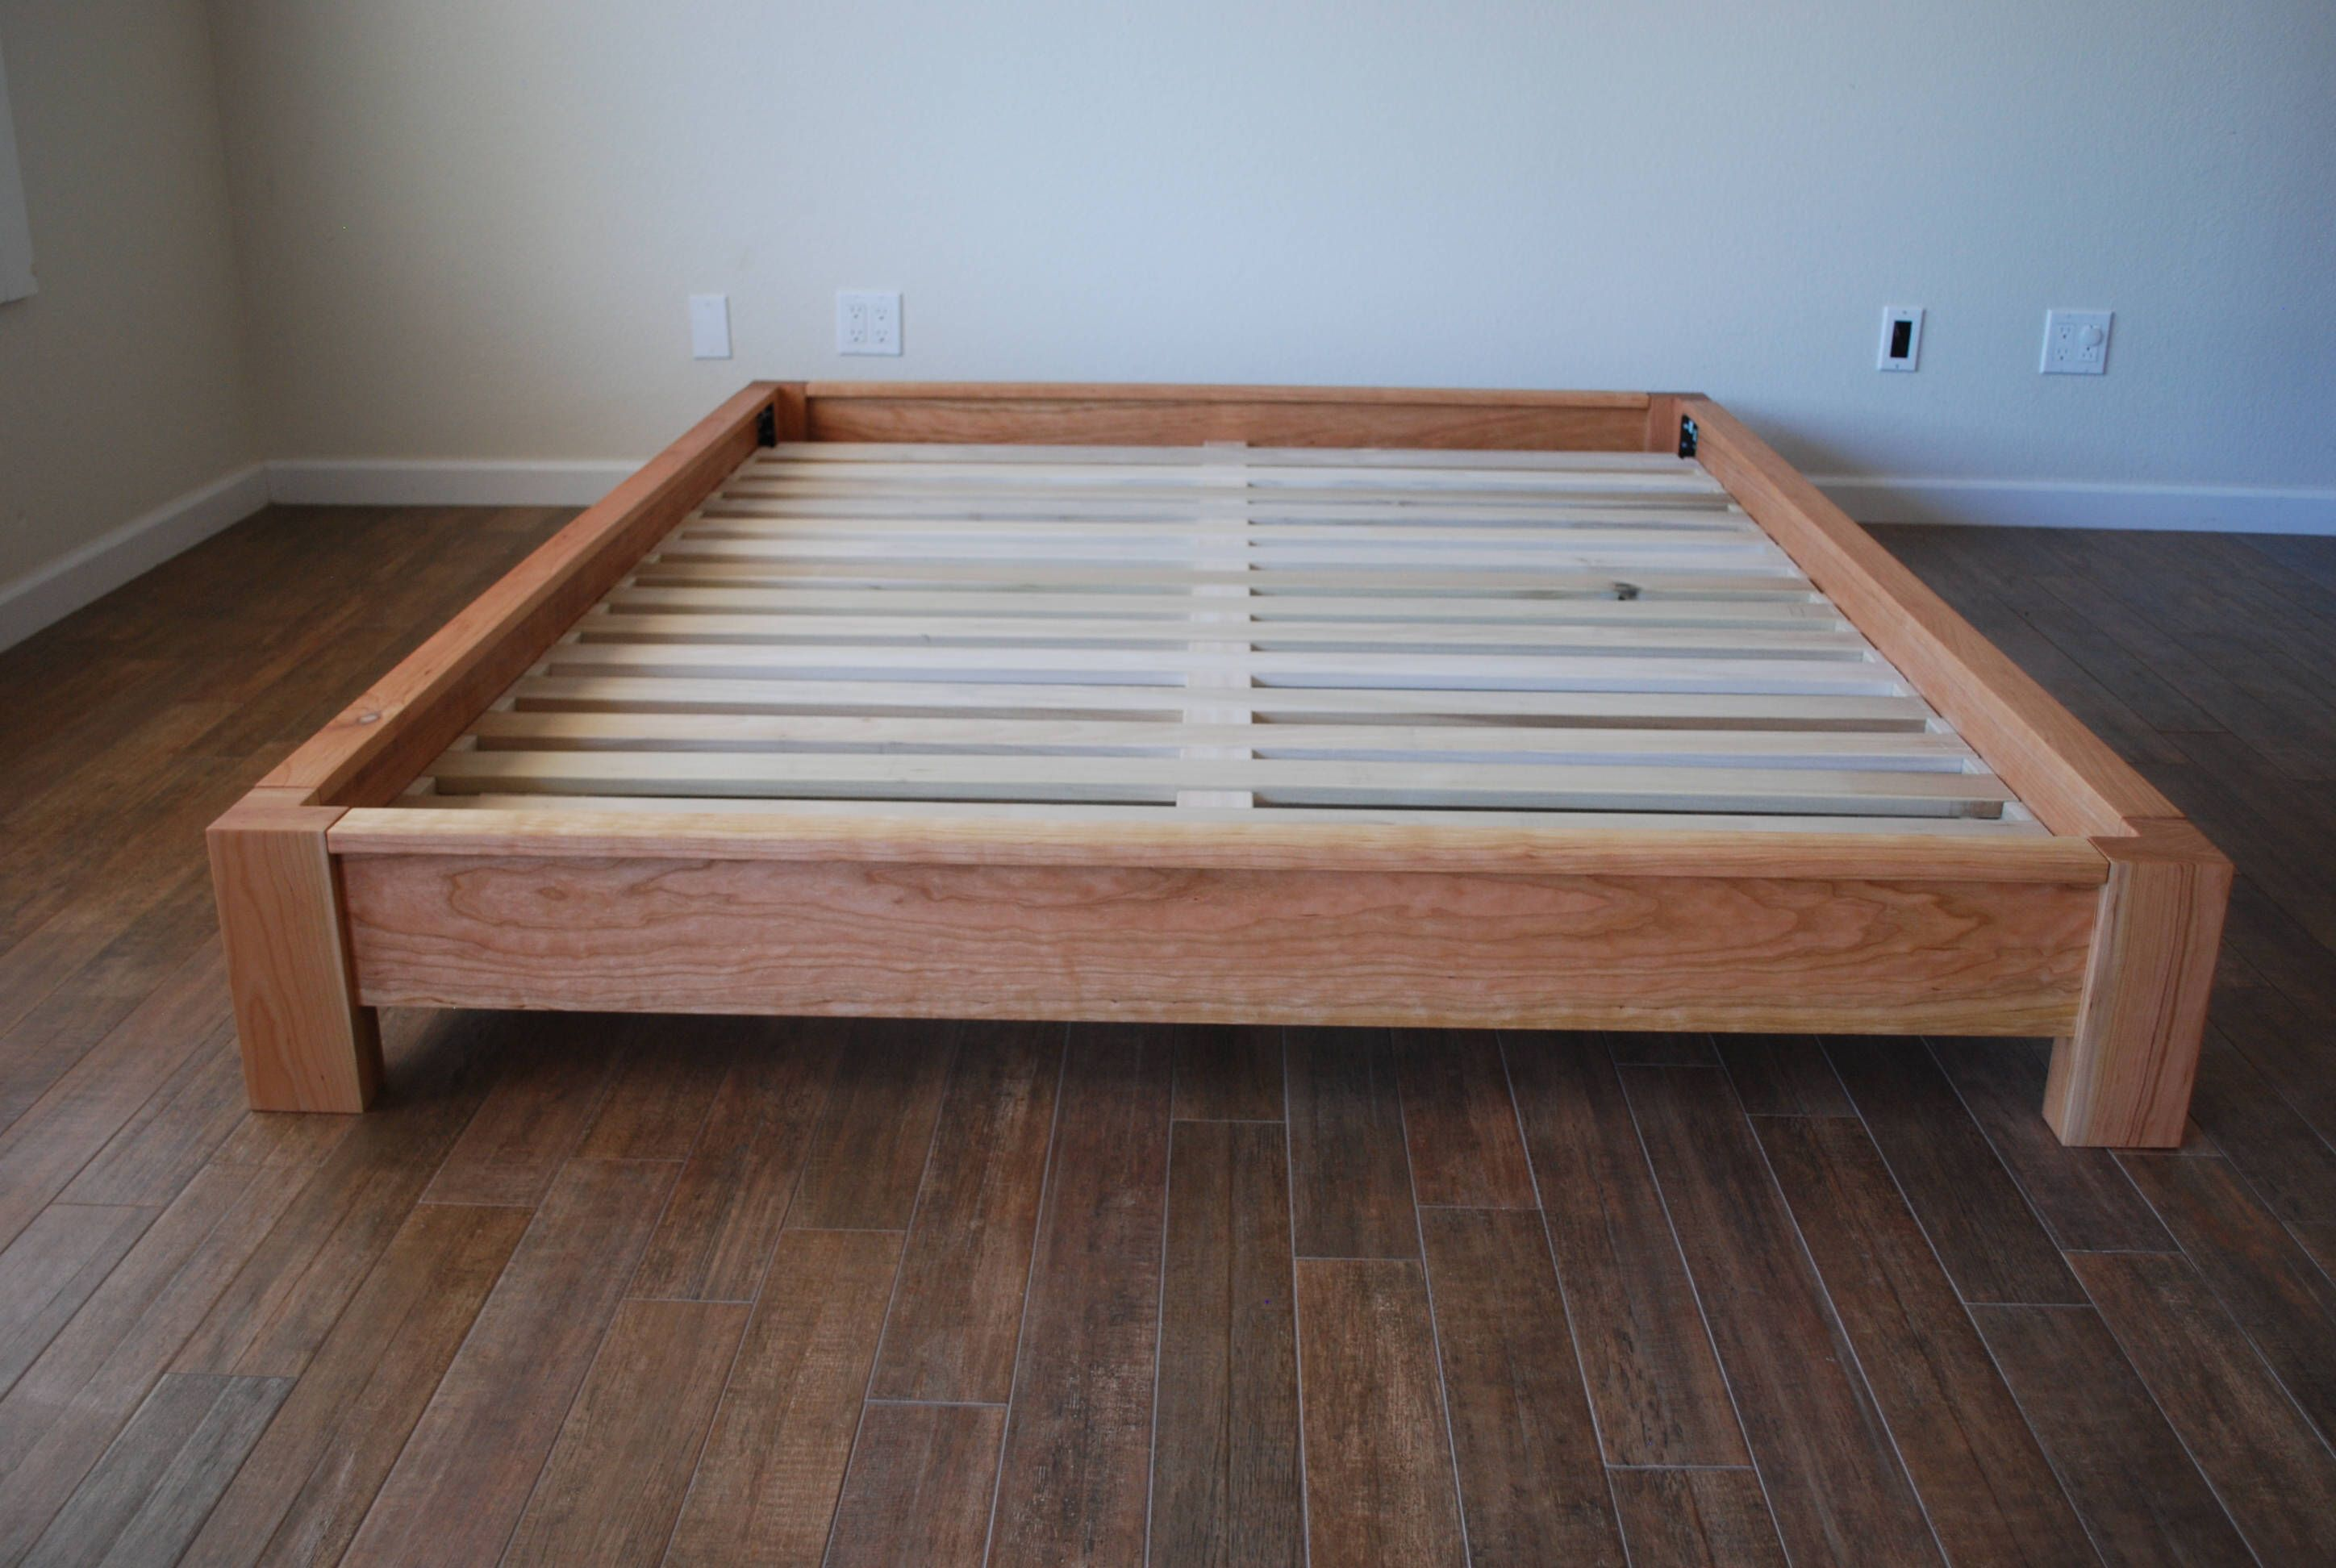 Low Profile Platform Bed In Cherry Simple Bed Frame Solid Hardwood Bed Twin Full Queen King Available With Headboard Quartos Mdf